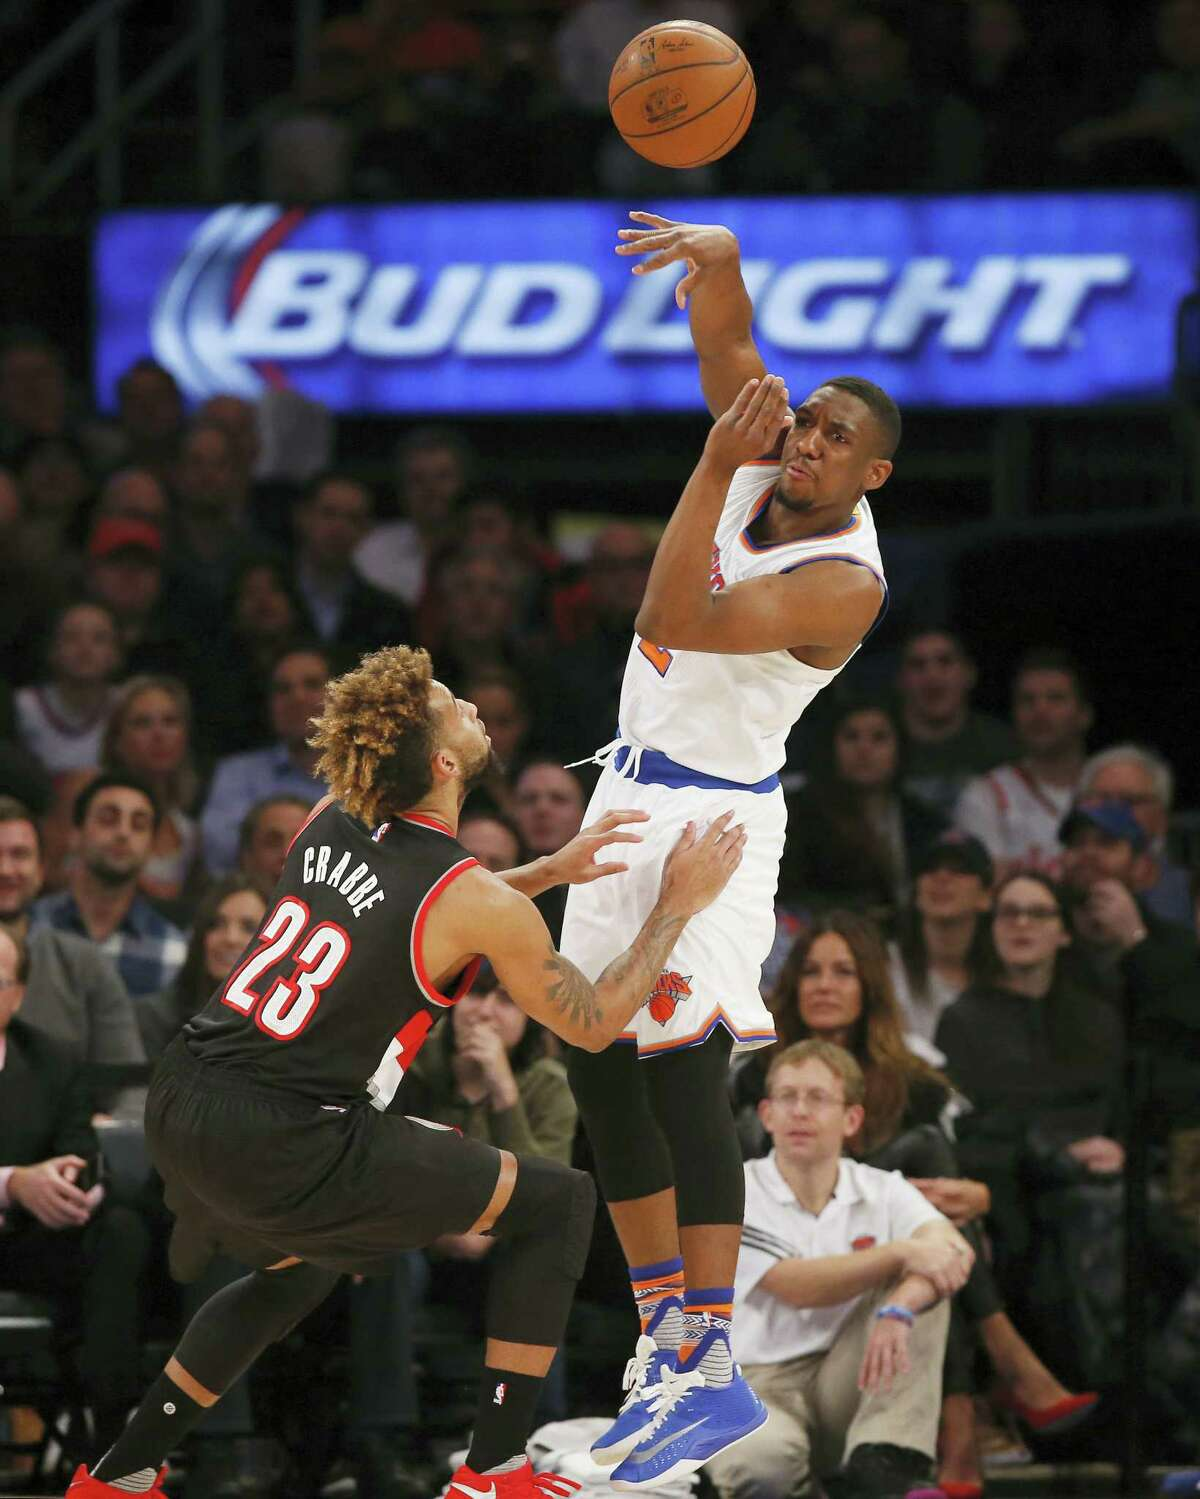 Knicks guard Langston Galloway (2) passes over Blazers guard Allen Crabbe in the first half in New York on Tuesday.